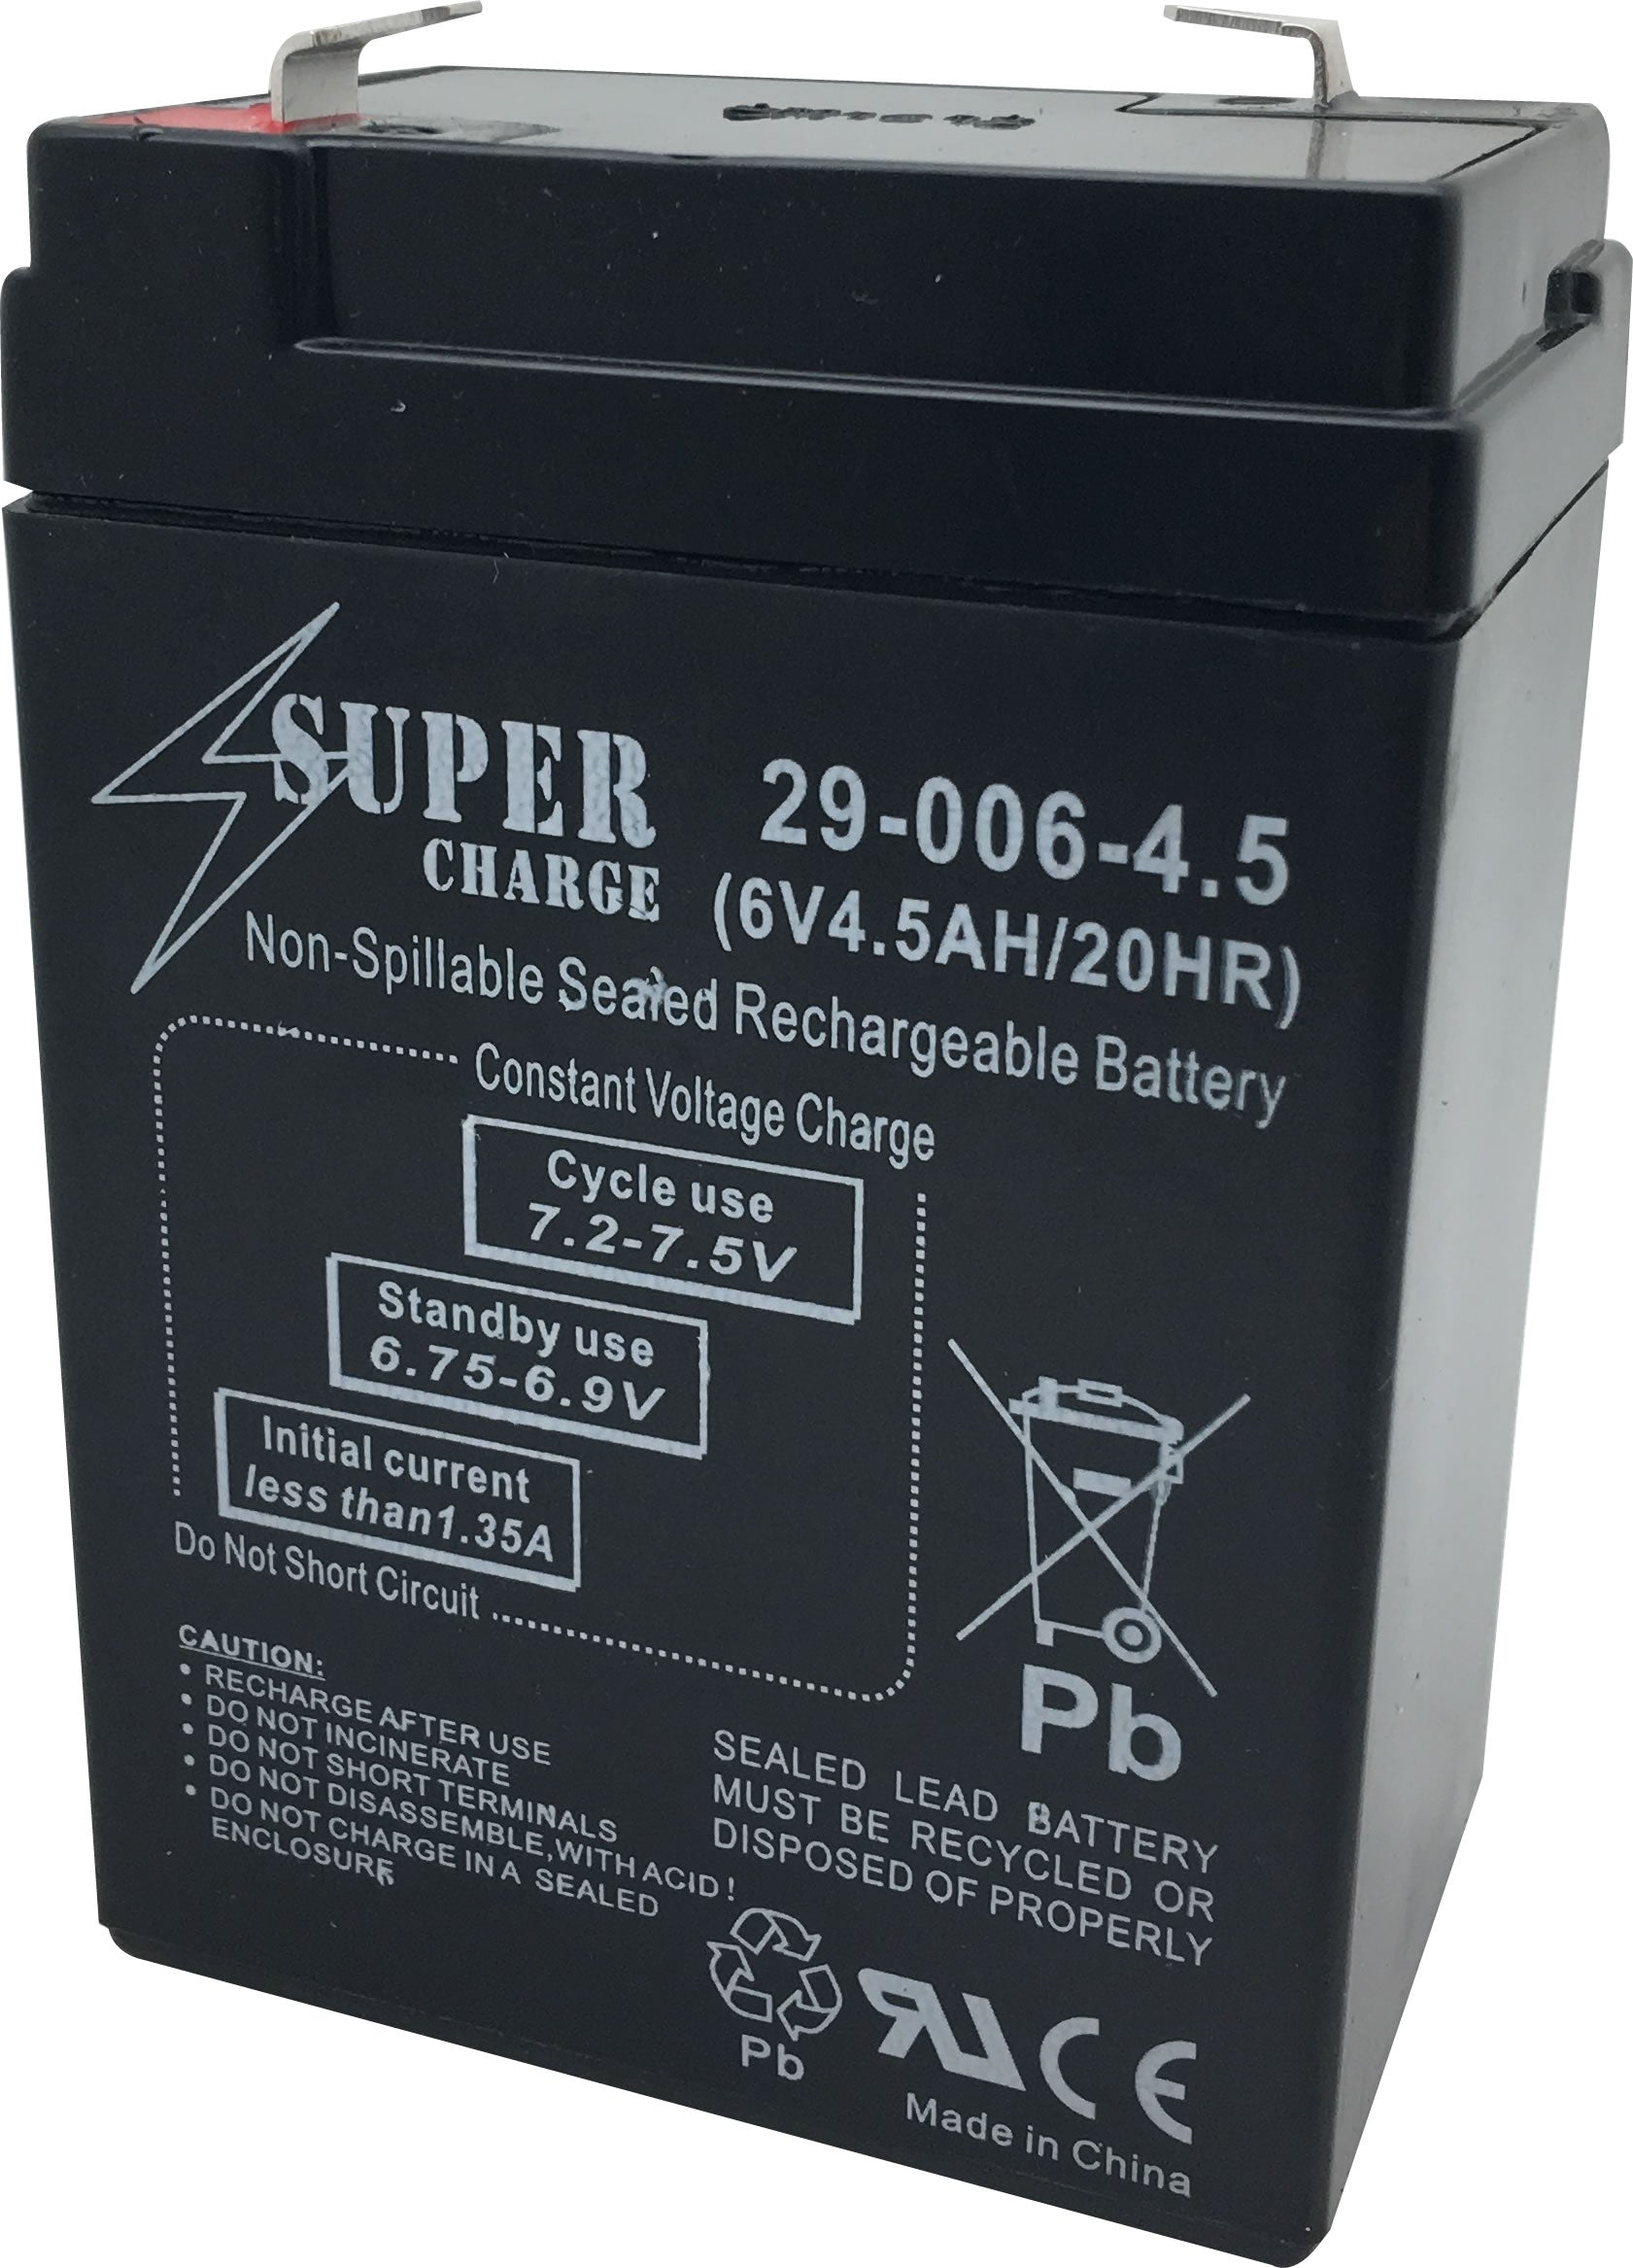 29-006-4.5 Rechargeable Battery 6V 4.5AH 20HR